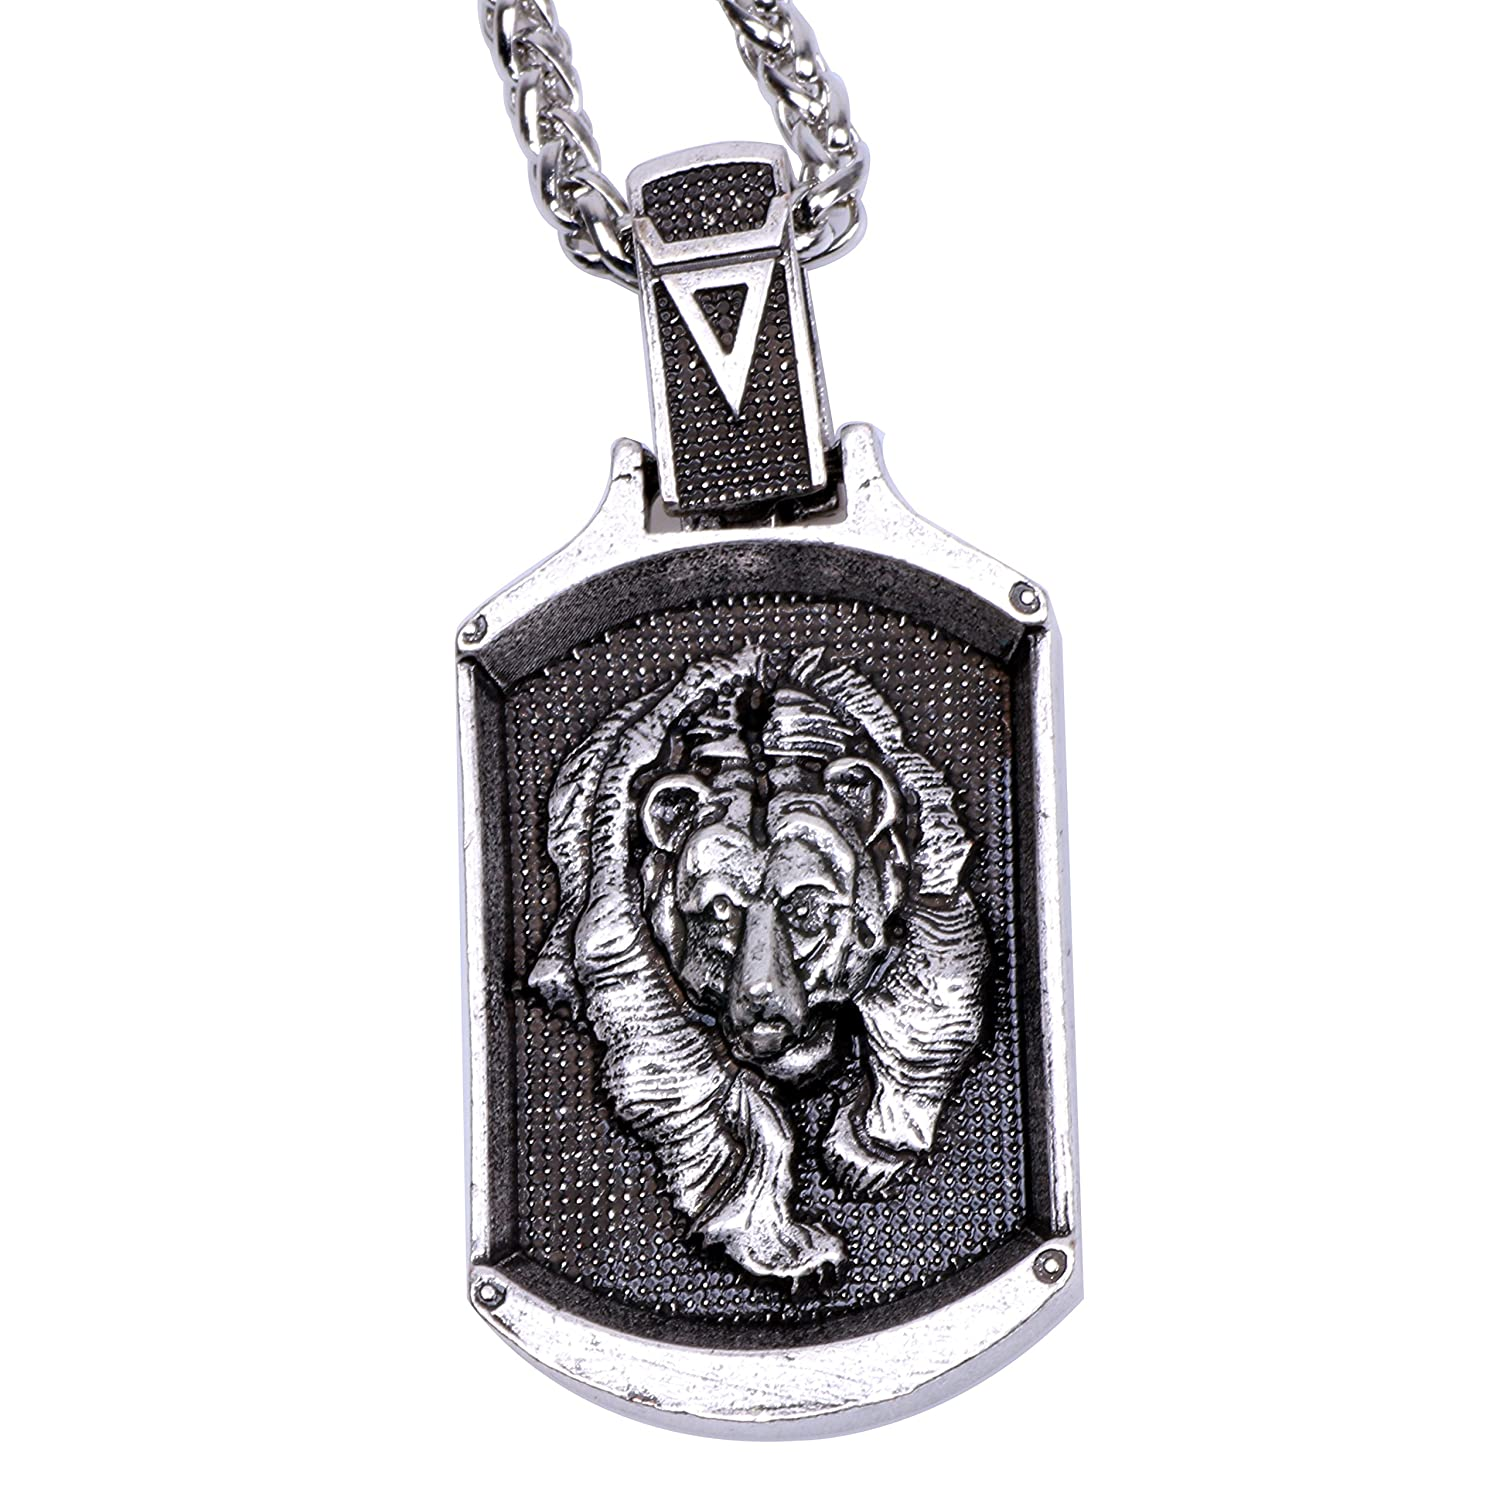 Mens Wolf Head Necklace Pendant for Men Norse Viking Warrior Arrow Headed Amulet Jewelry Zhiyu 4028